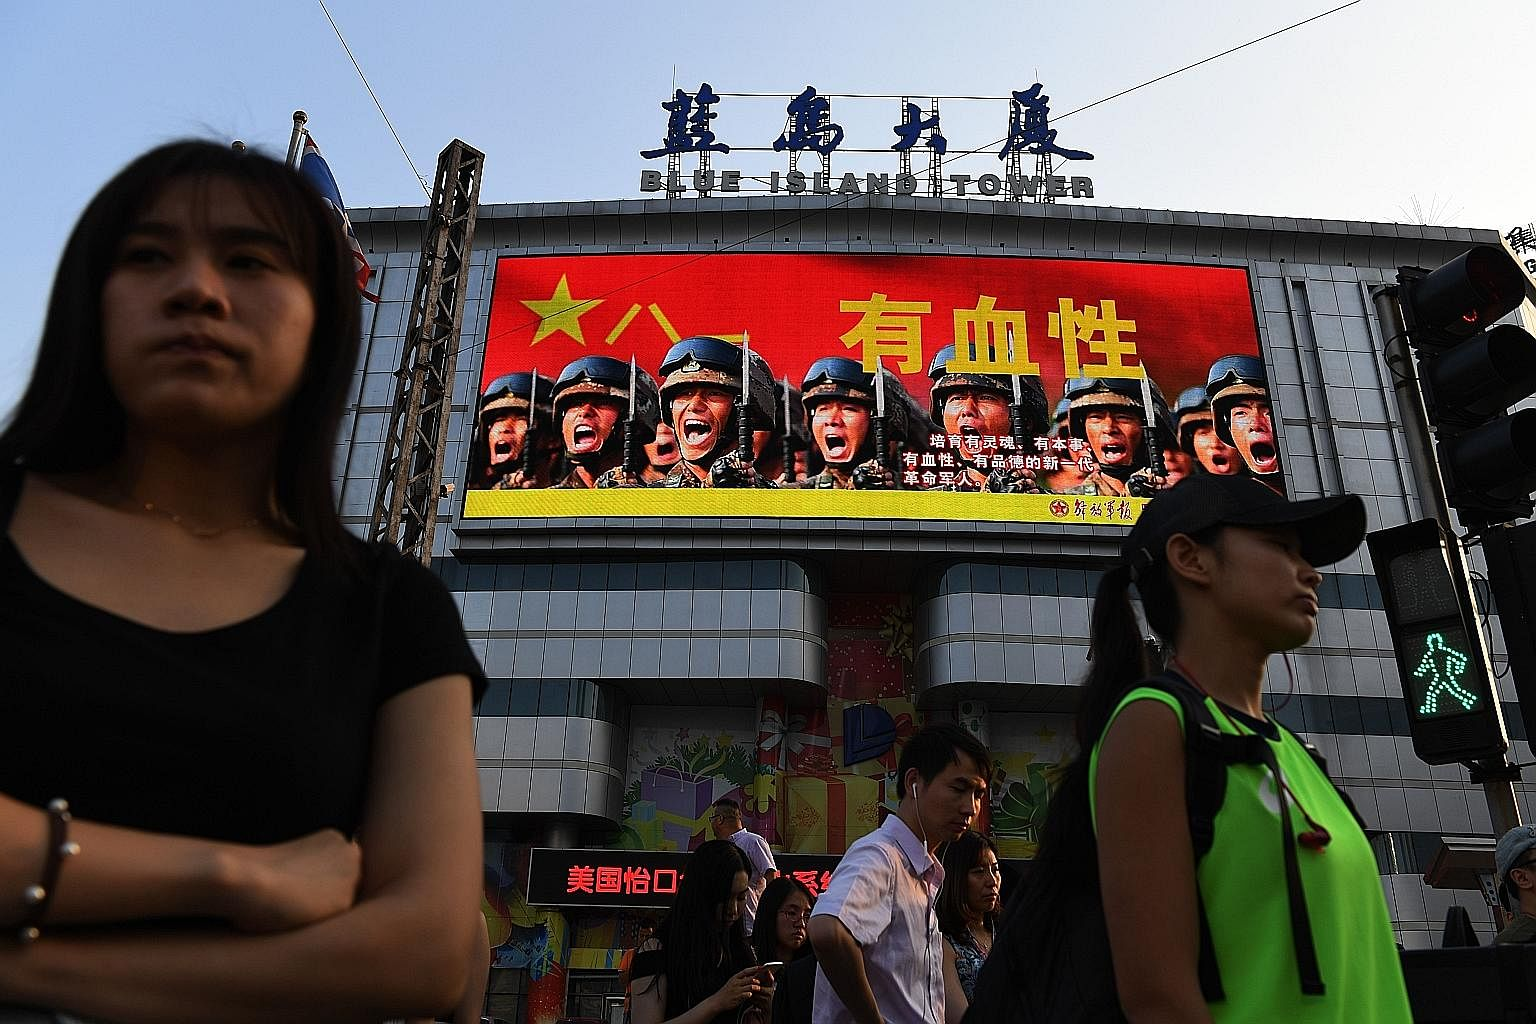 """A military recruitment advertisement at a shopping mall in Beijing. Editorials in publications such as the Global Times declare that China """"must be prepared for any military confrontation""""."""